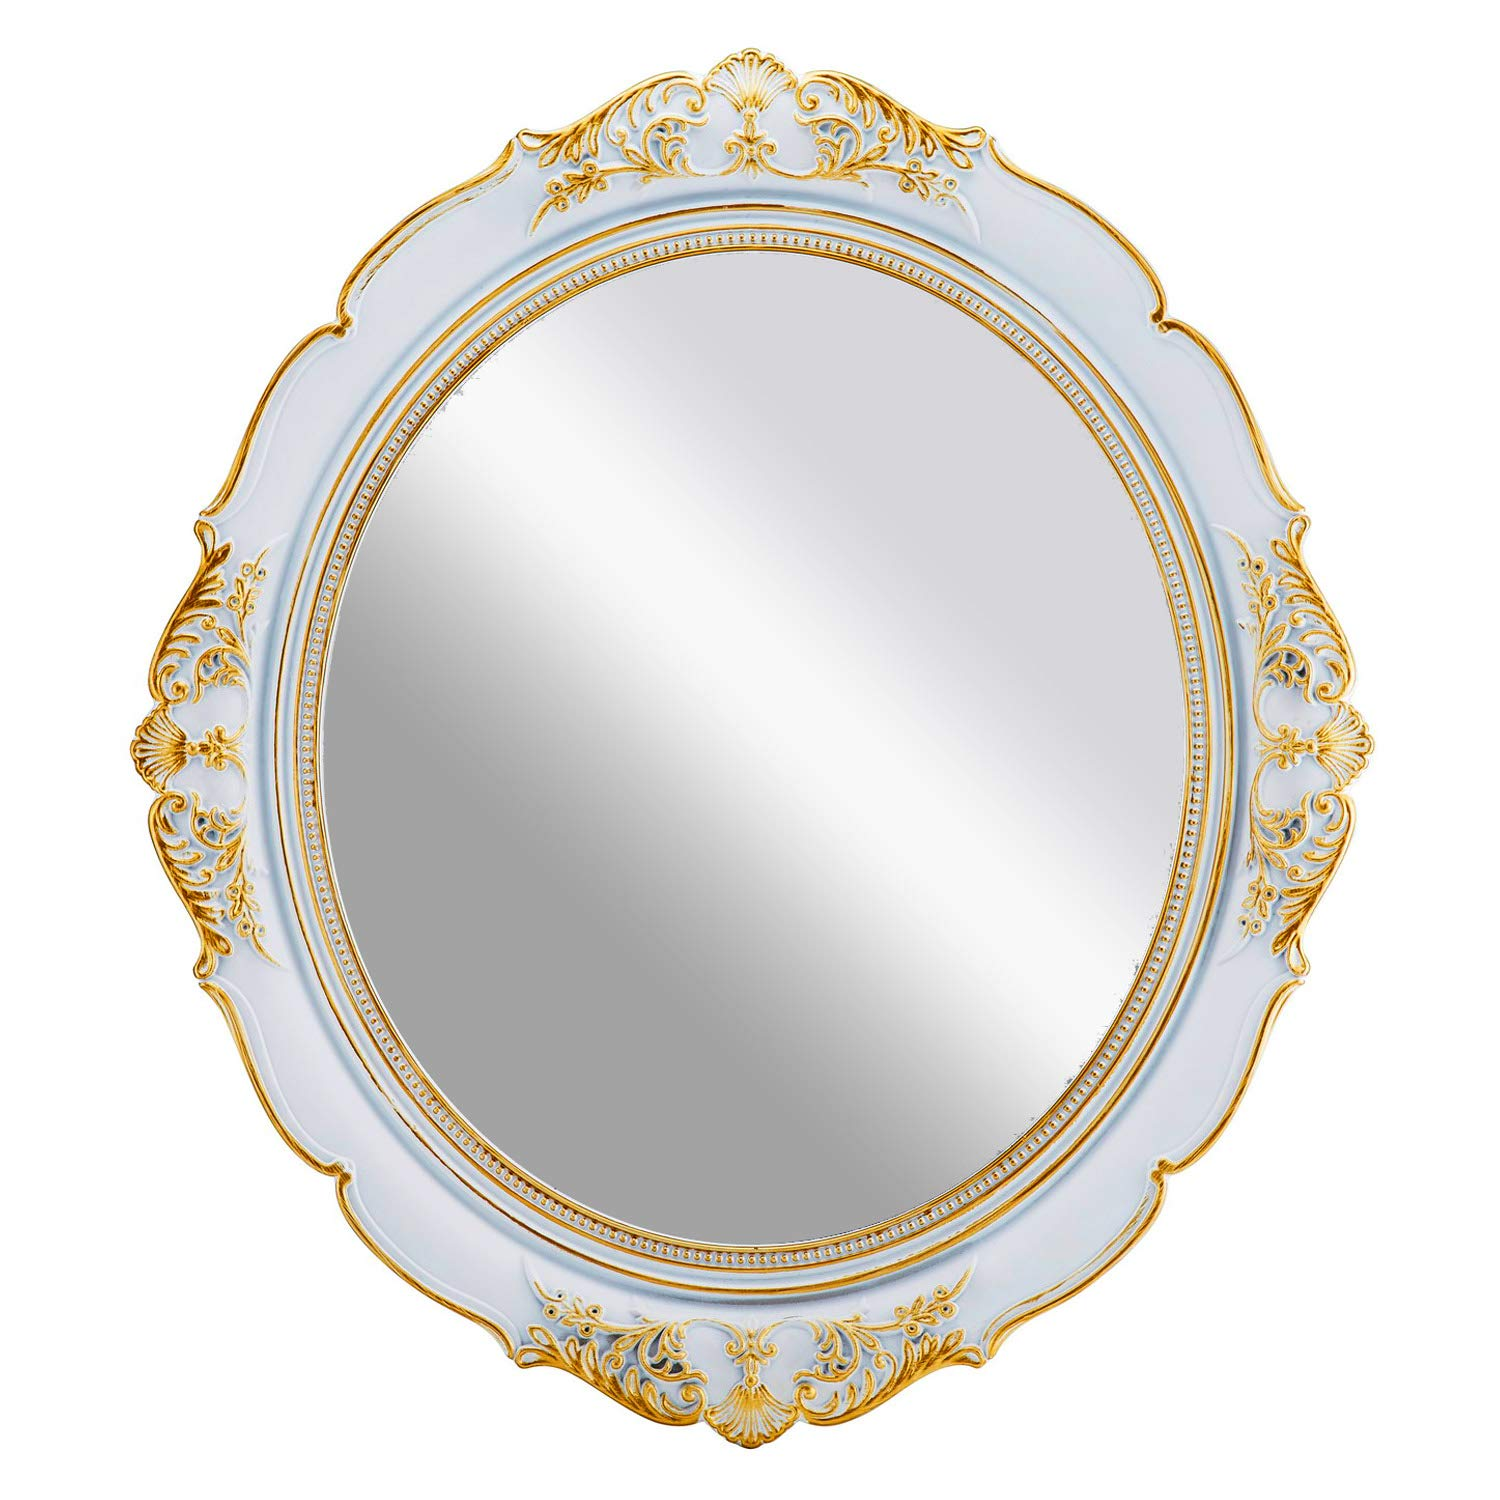 "OMIRO Decorative Wall Mirror, Vintage Hanging Mirrors for Bedroom Living-room Dresser Decor, Oval Antique White 13""W x 15""L"